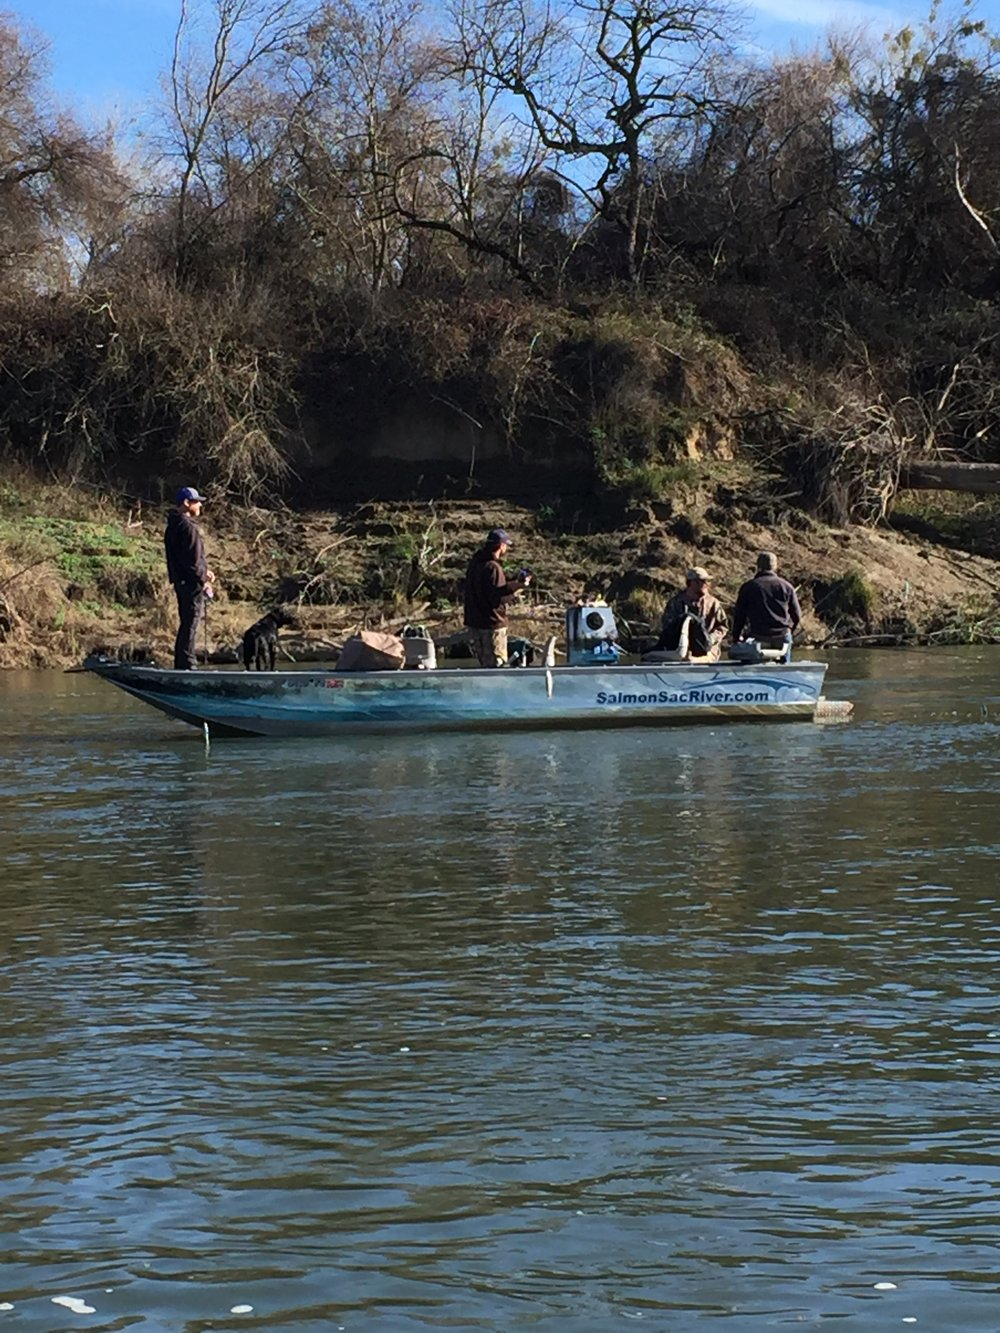 John Patterson, Cole Barnes, and Dakota McFall stand casting for striped bass on the Sacramento River on January 18, 2018, with striped bass fishing guide Mike Rasmussen owner of  SalmonSacRiver.com . Photo courtesy of Billy Driessen of Driessen's Guide Service, who was out fishing for giant striped with clients of his own.